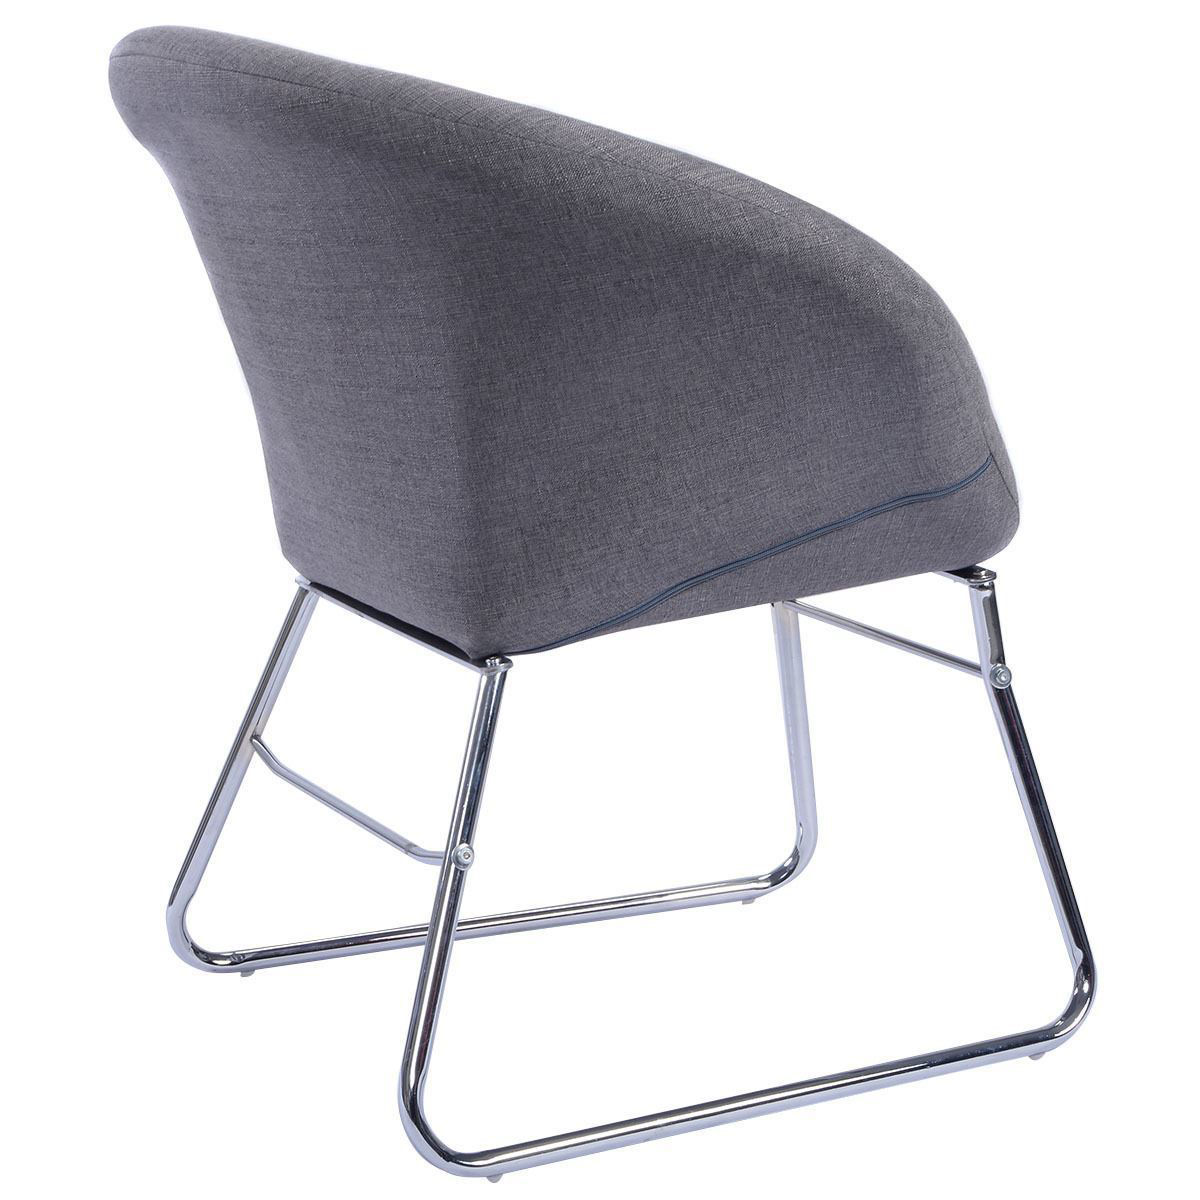 Picture of Living Room Modern Accent Chair Leisure Arm Lounge Furniture Gray